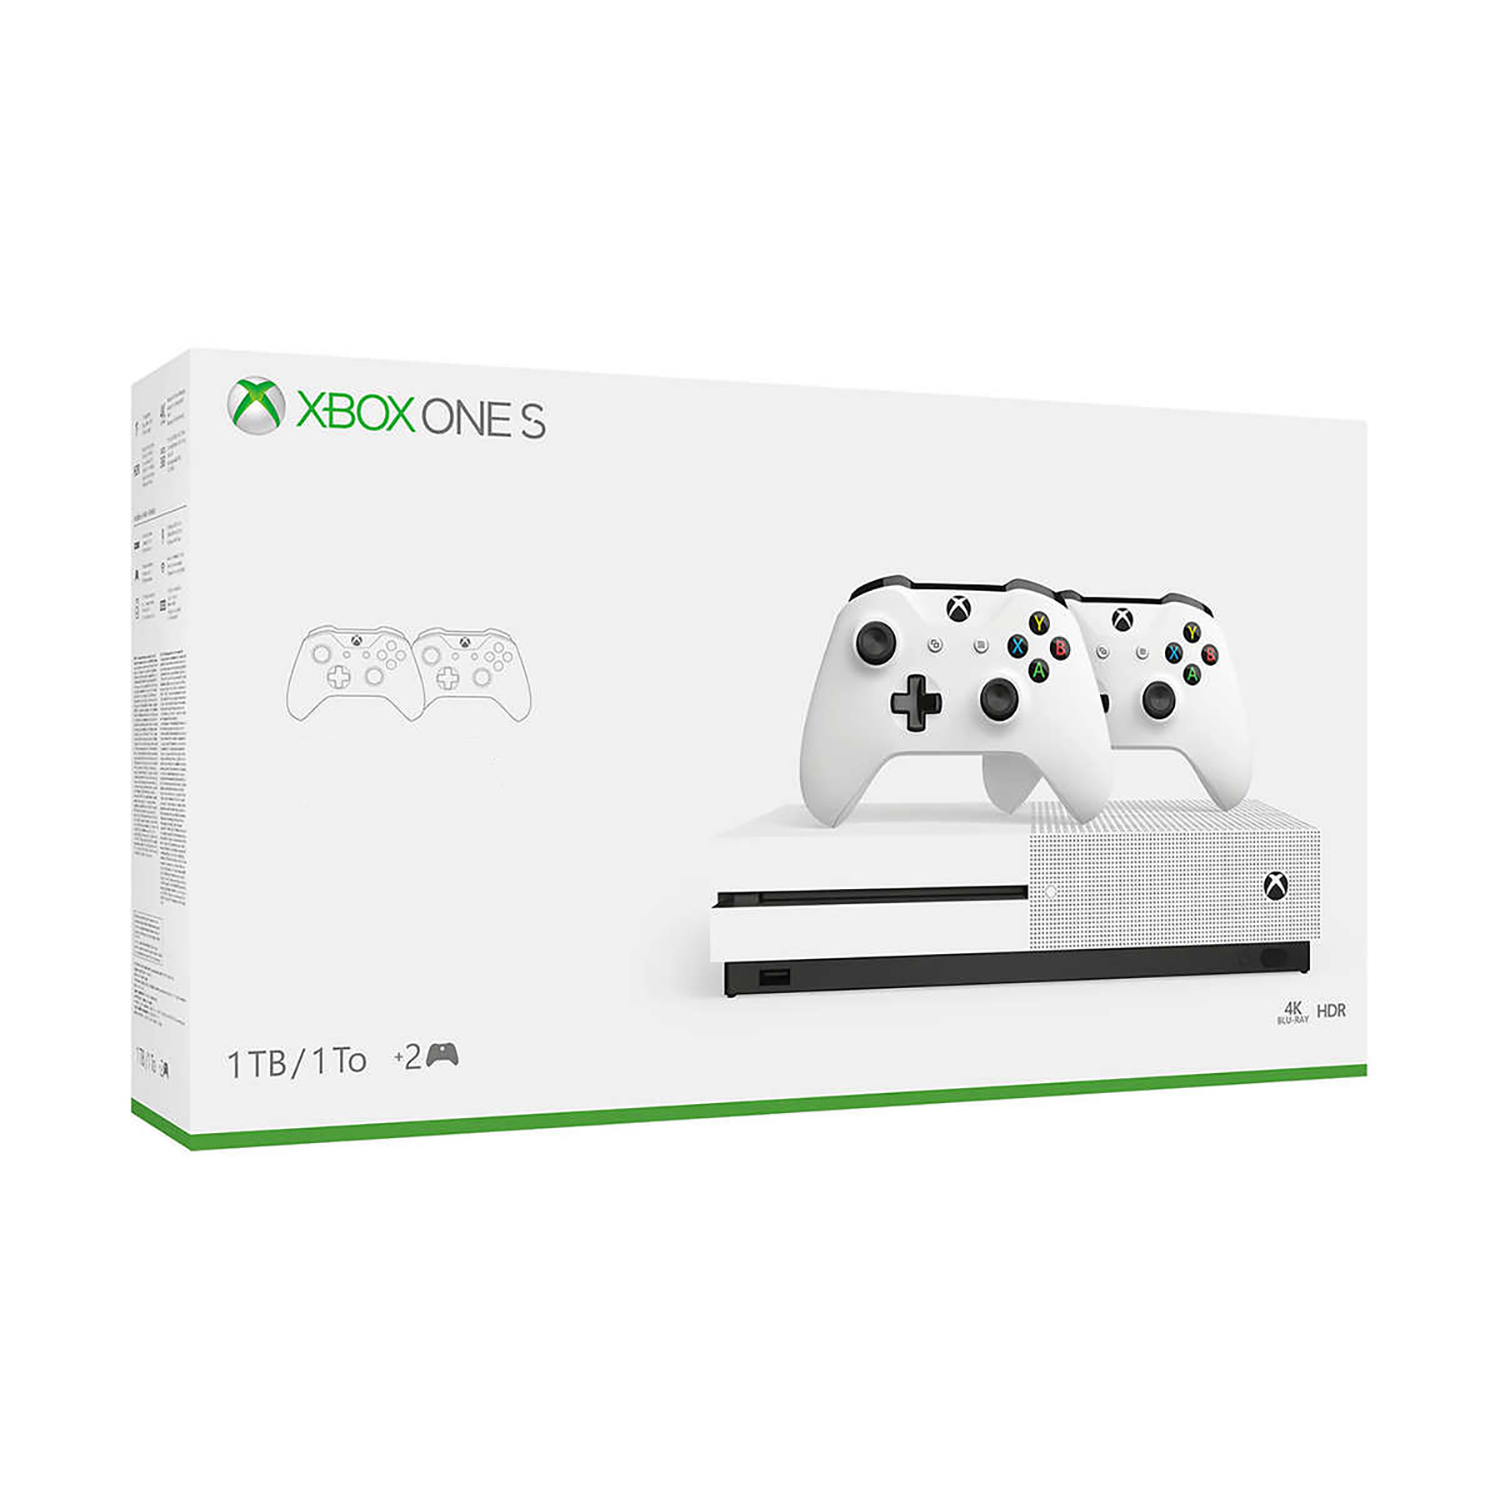 Microsoft Xbox One S 1TB Console with 2 Controllers Open Box Factory Refurbished by Microsoft